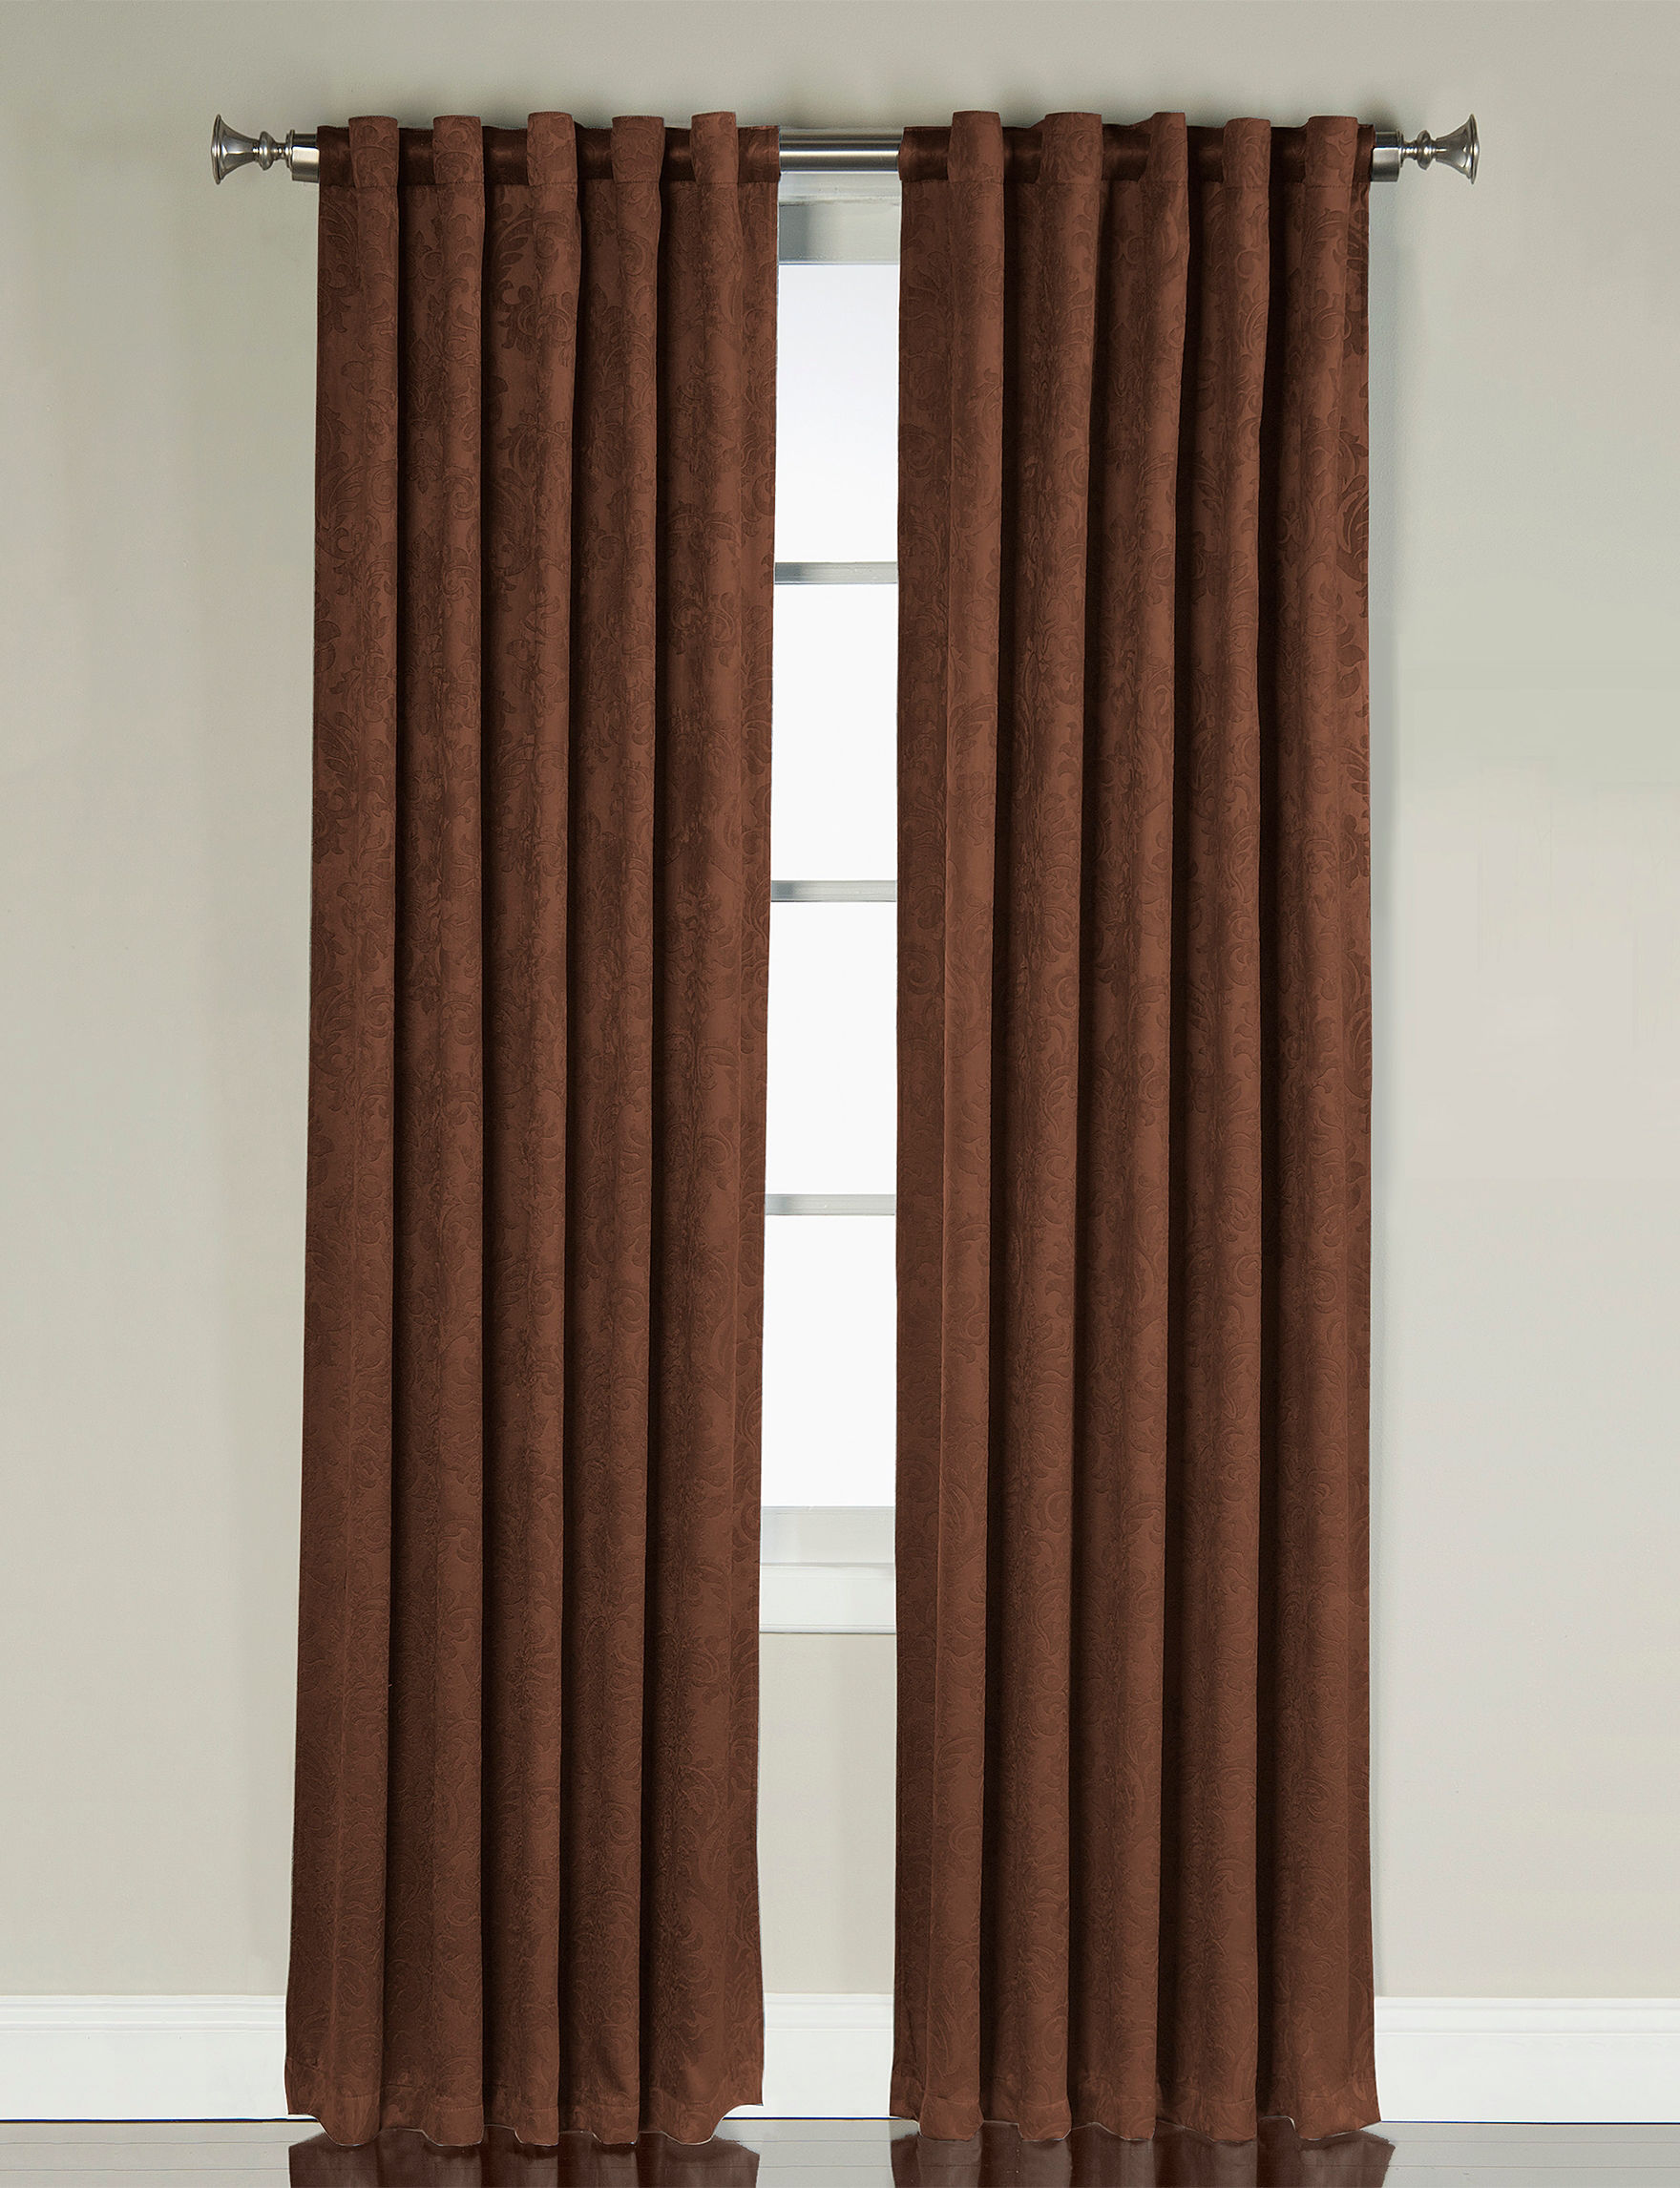 Victoria Classics Chocolate Curtains & Drapes Window Treatments